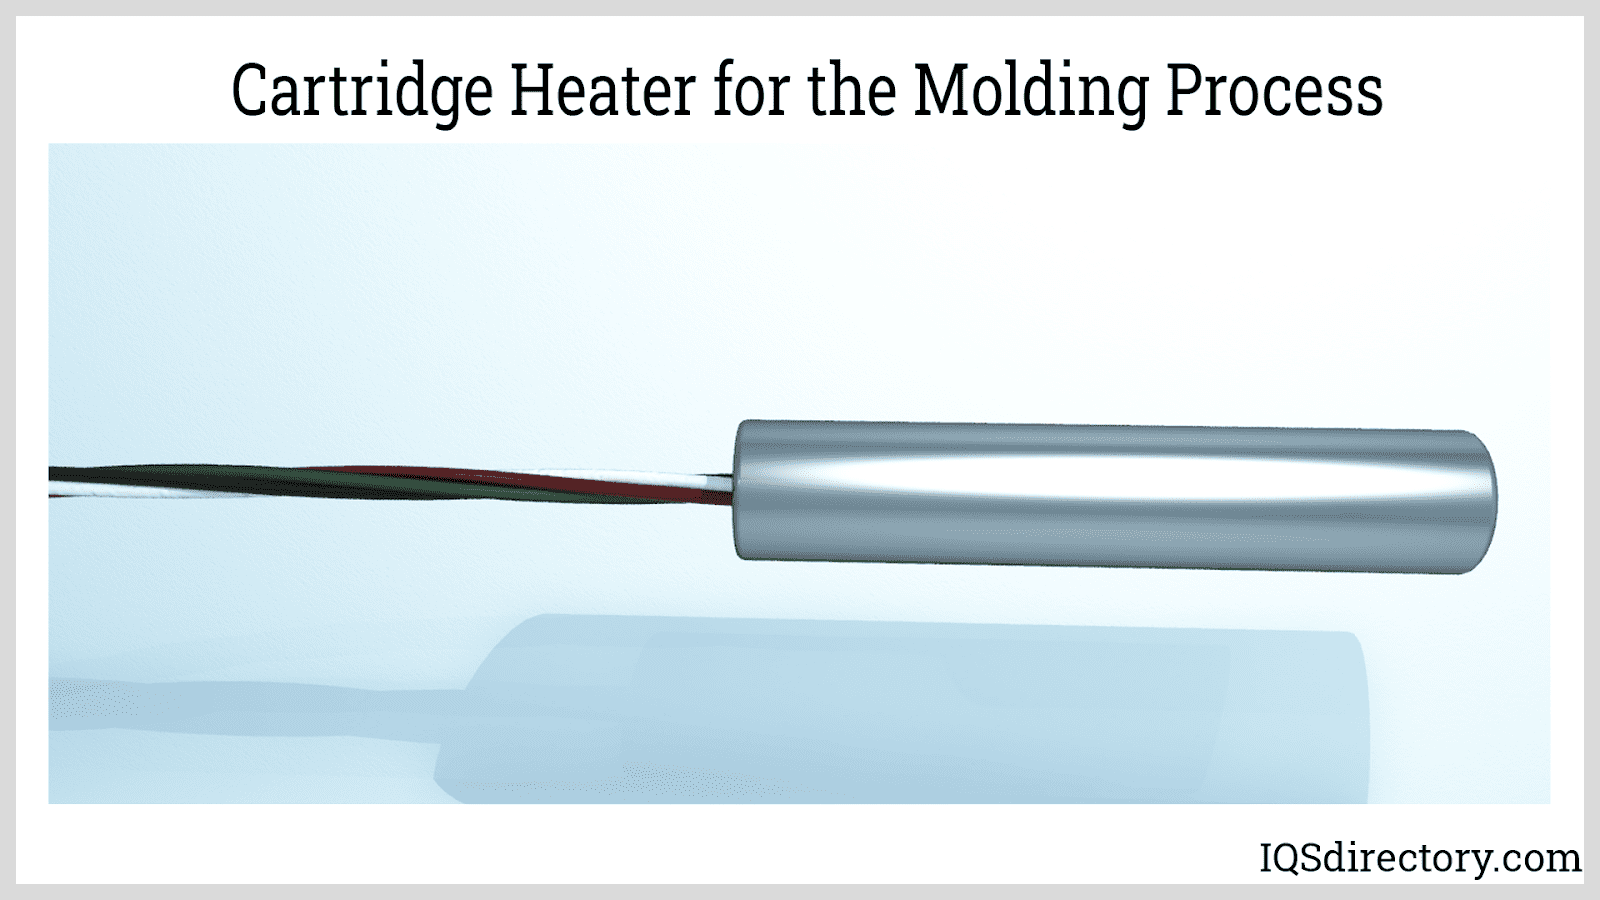 Cartridge Heater for the Molding Process